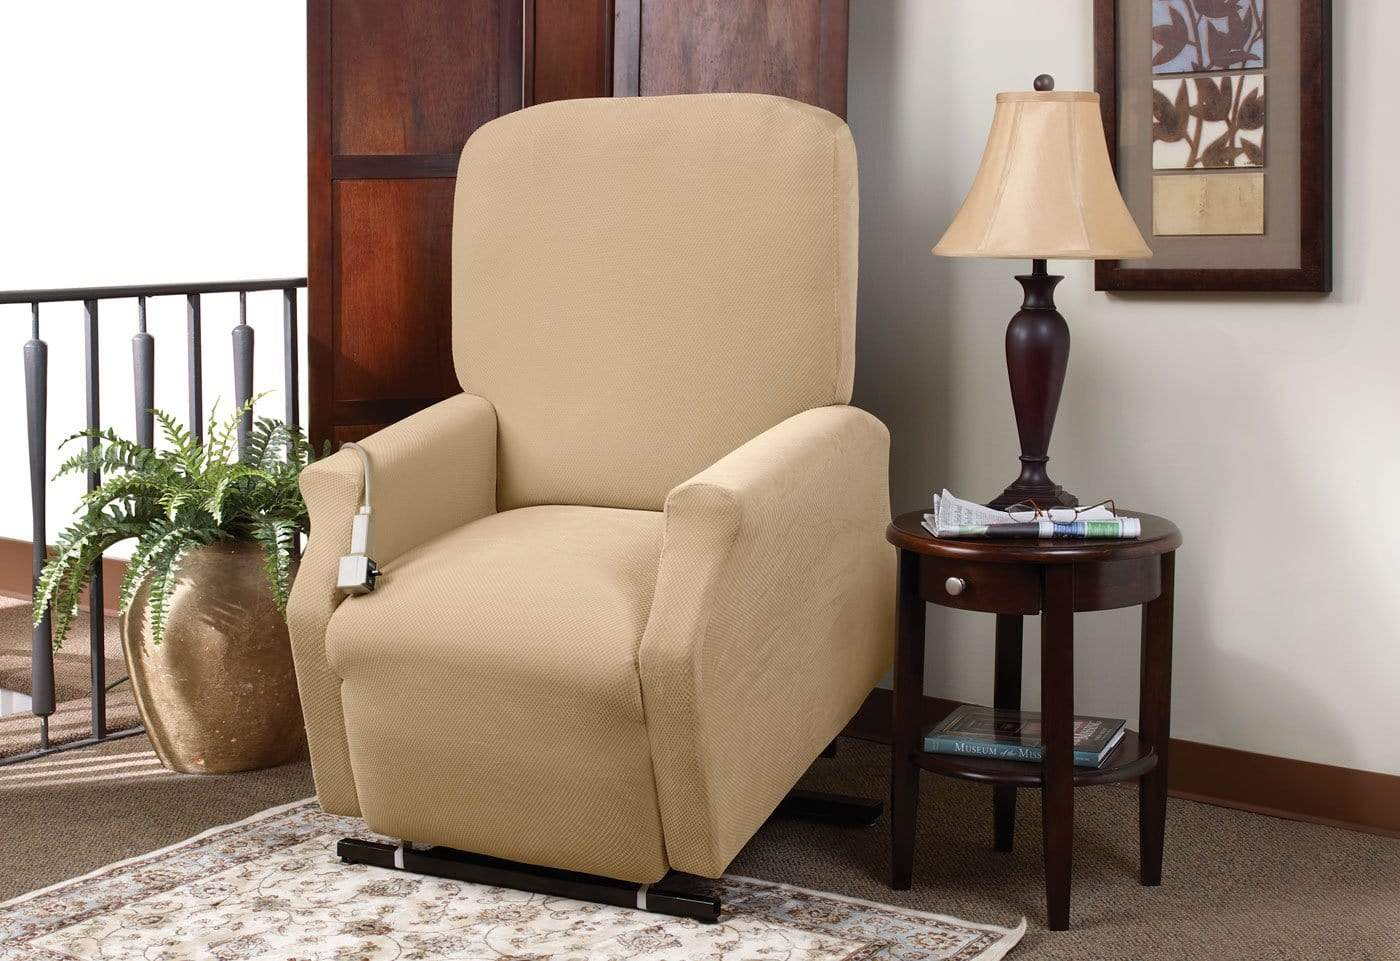 Stretch Piqué One Piece Medium Lift Recliner Slipcover - Final Sale - Medium Lift Recliner / Cream